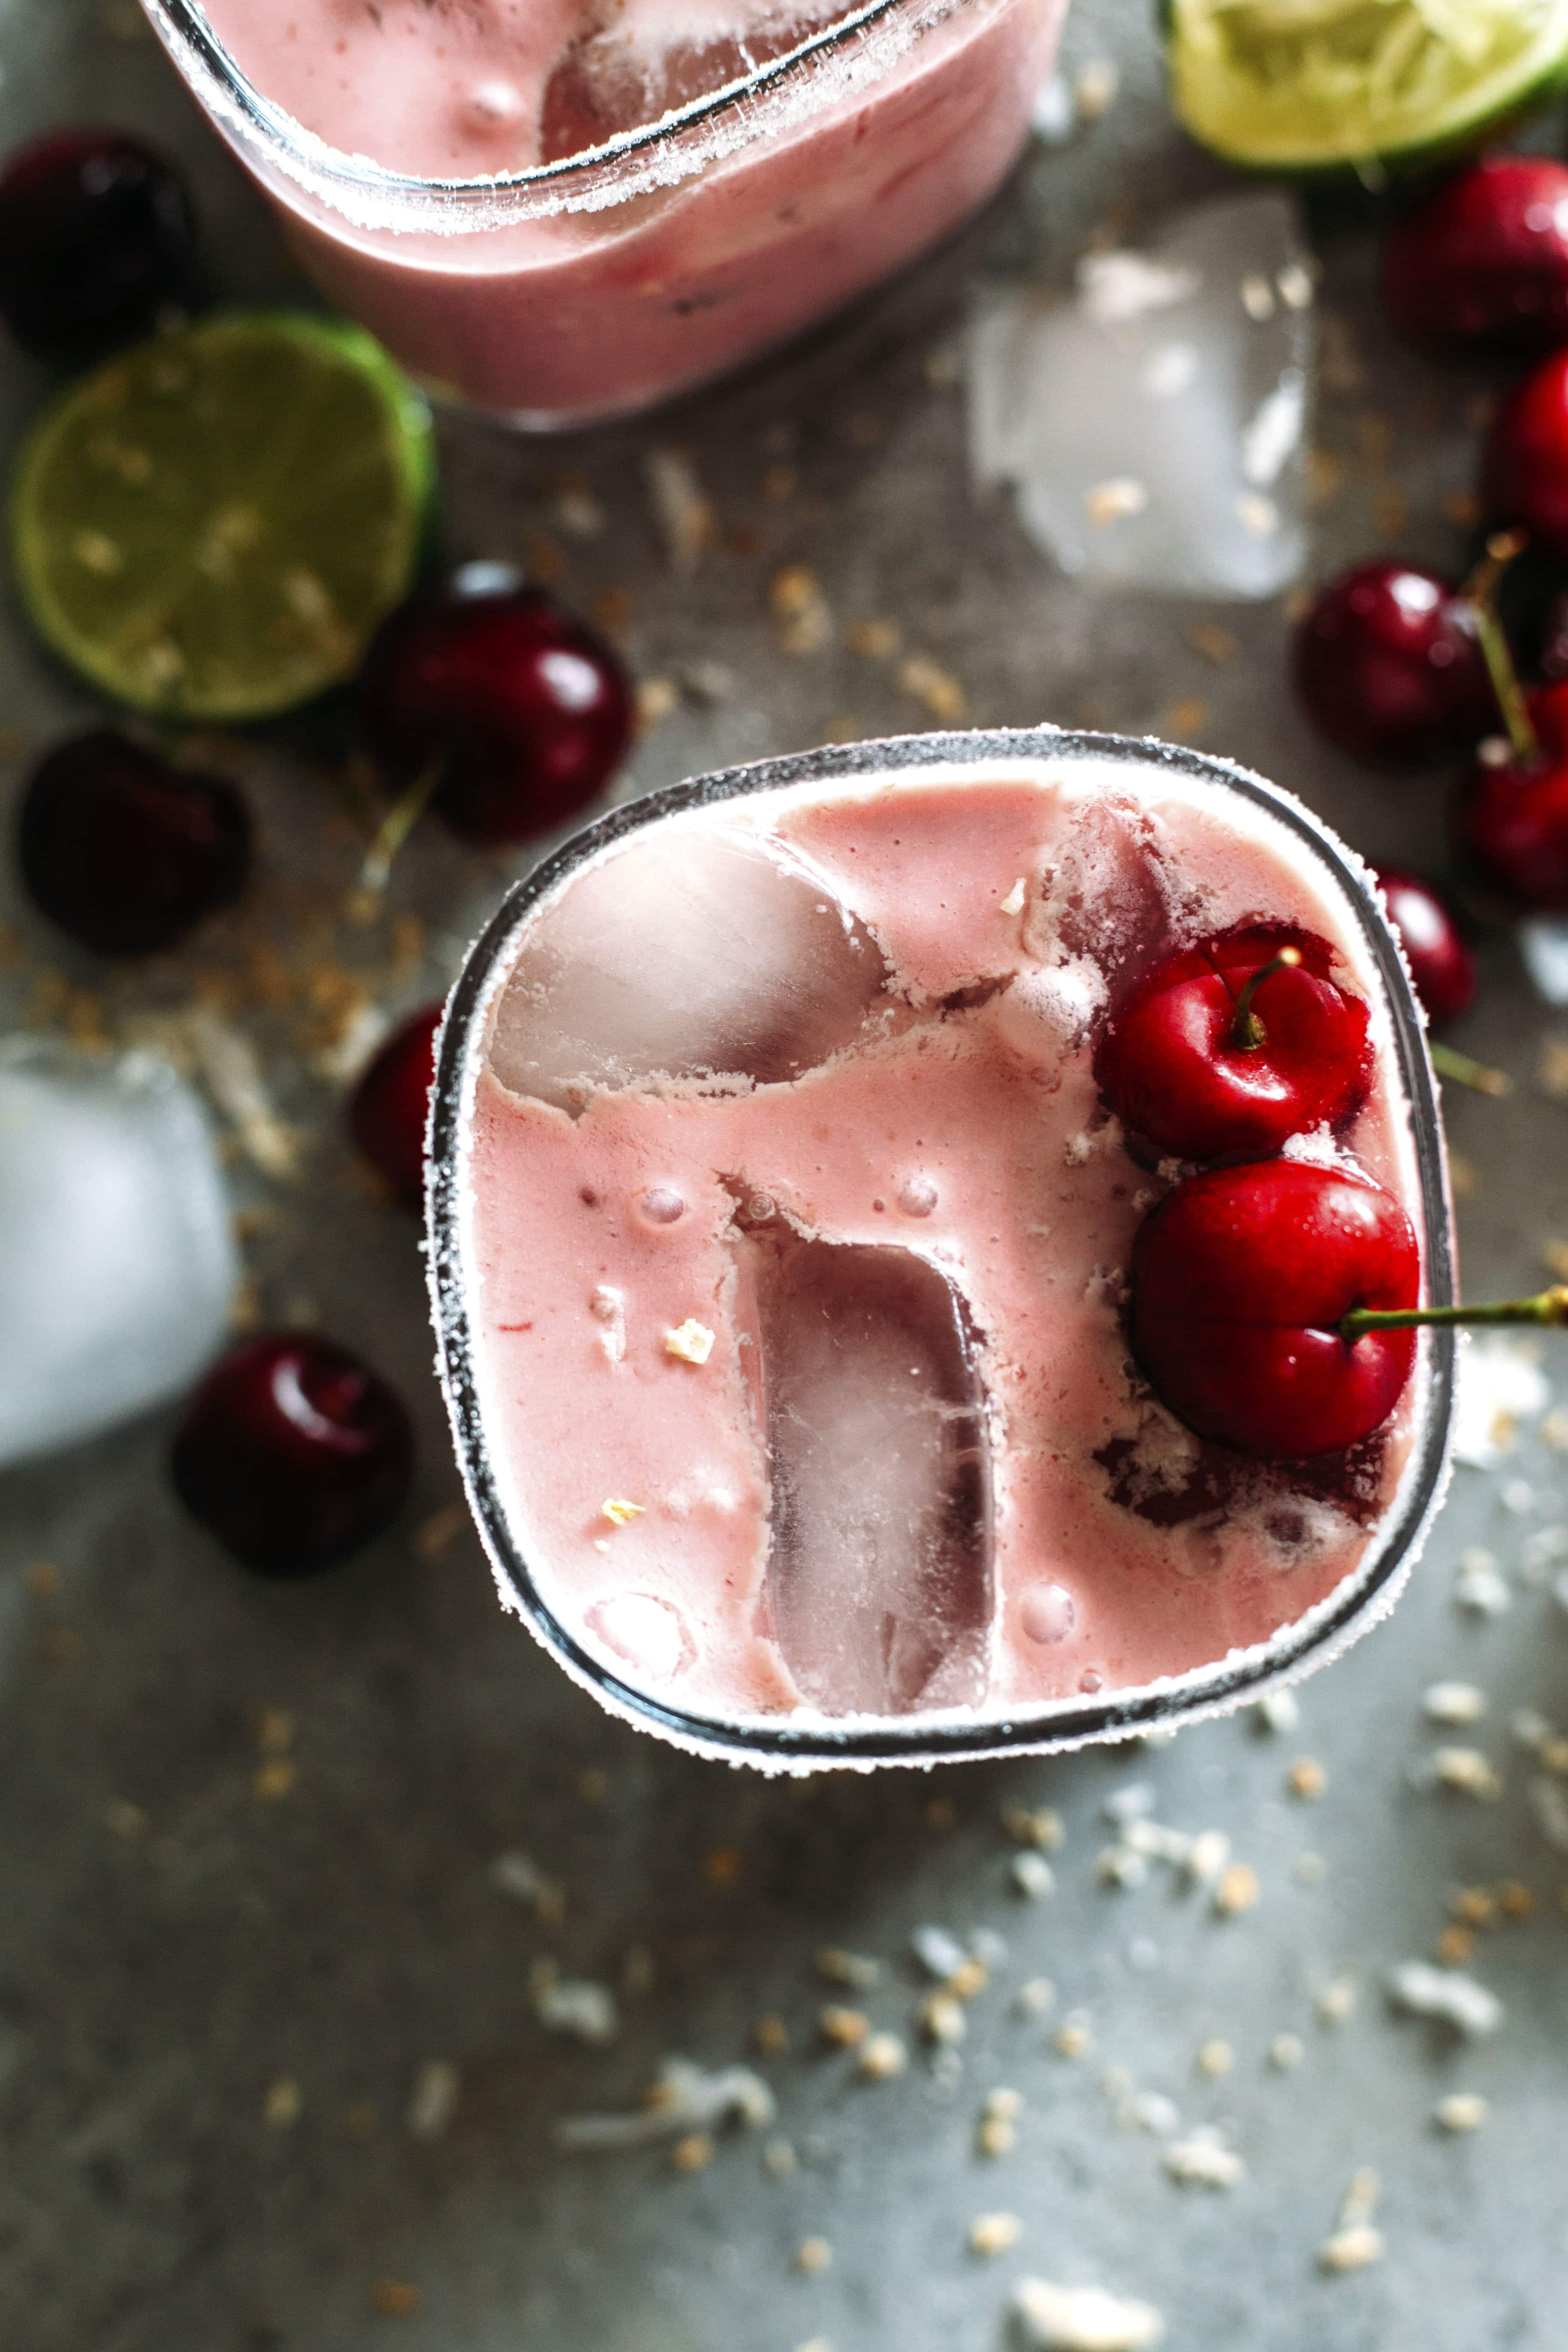 Cherry Coconut Margaritas | This creamy drink is made with fresh cherries and coconut milk and is super refreshing! | thealmondeater.com